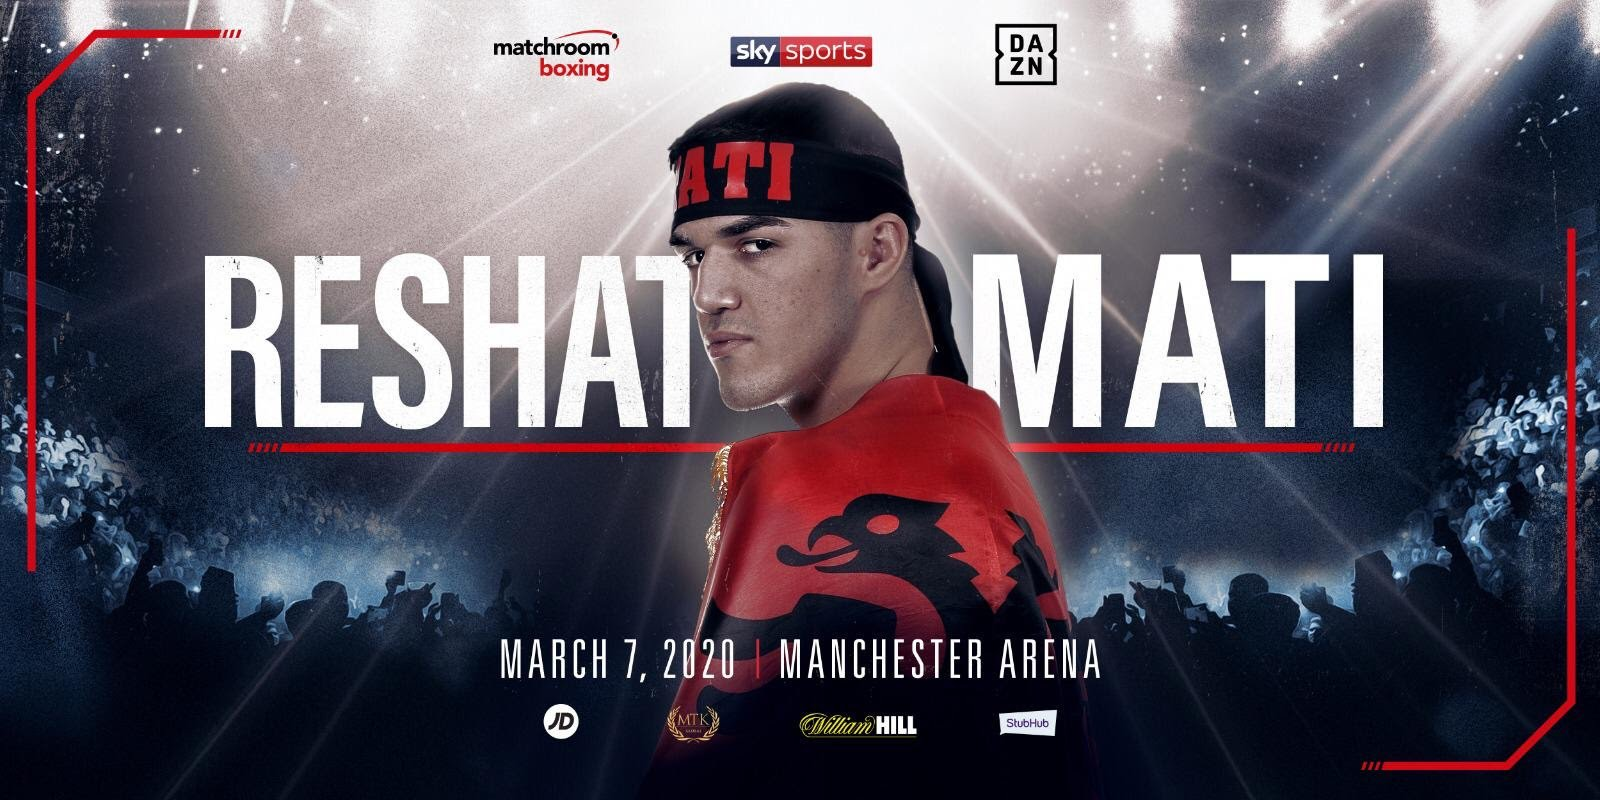 Jono Carroll, Reshat Mati, Scott Quigg - Rising Welterweight starlet Reshat Mati will make his UK debut on the undercard of Scott Quigg vs. Jono Carroll at Manchester Arena on Saturday March 7, live on Sky Sports in the UK and DAZN in the US.